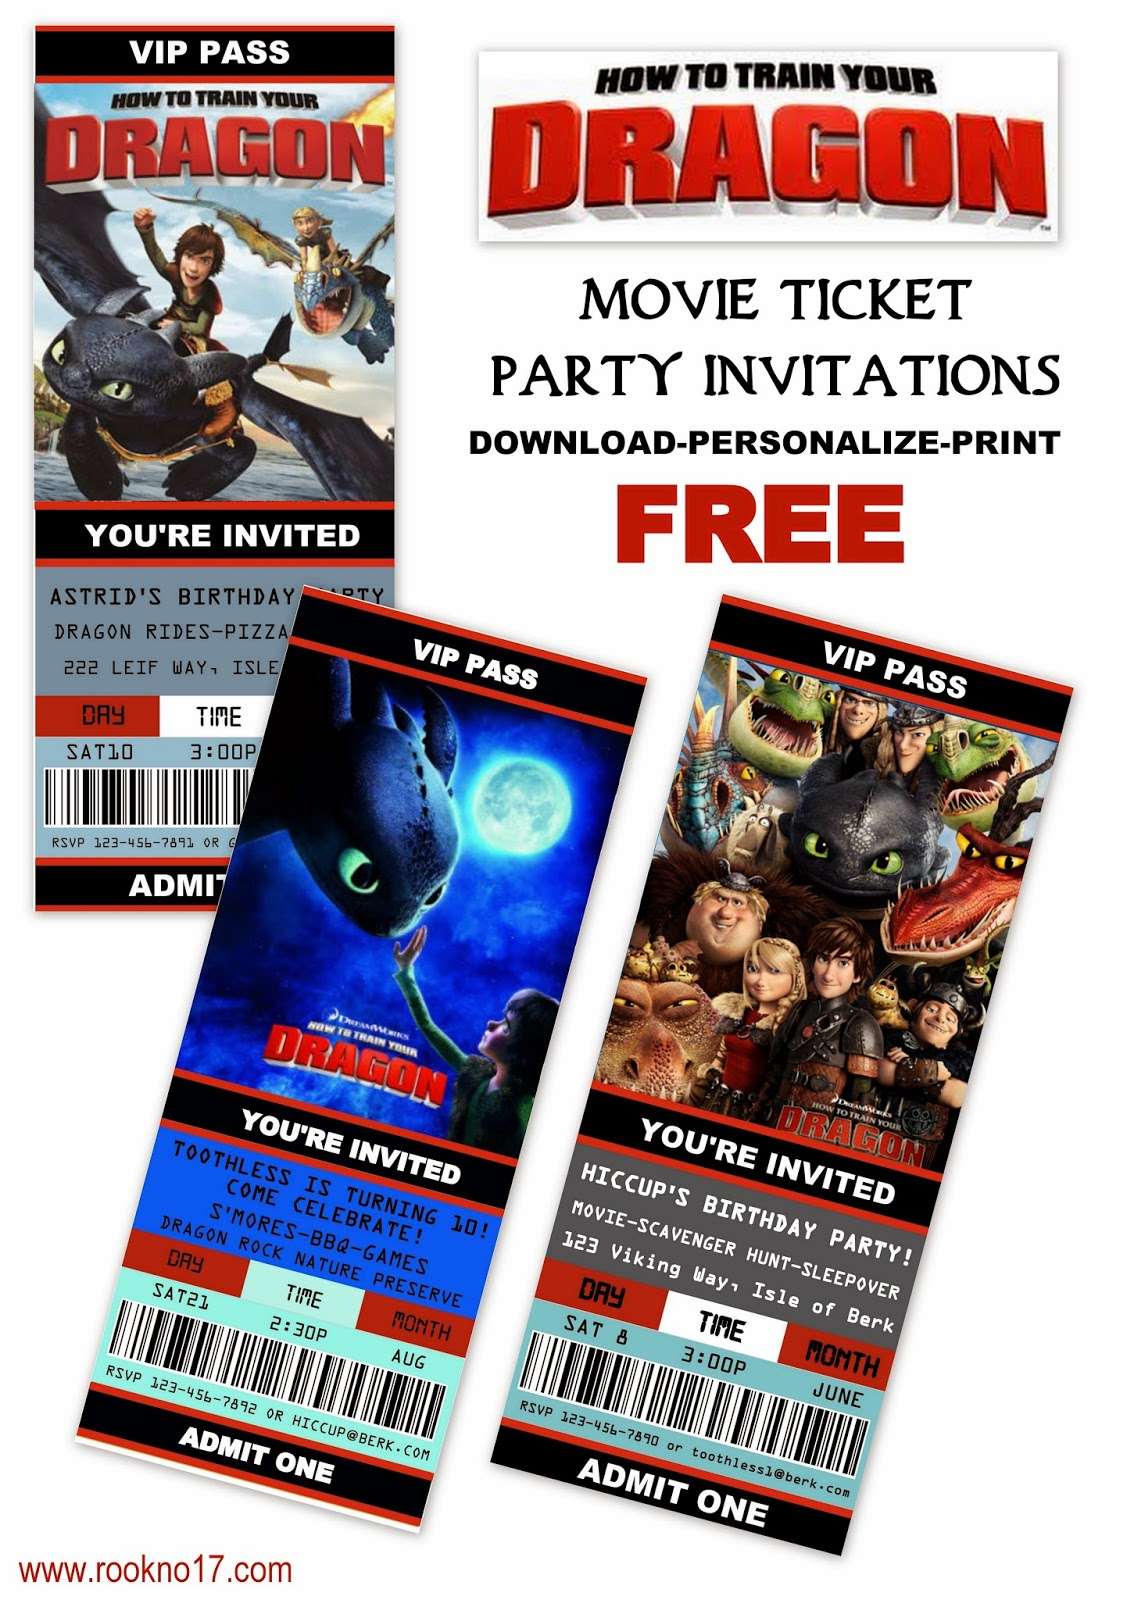 Free Printable Movie Ticket Style Invitations: How To Train Your Dragon  Free Printable Ticket Style Invitations